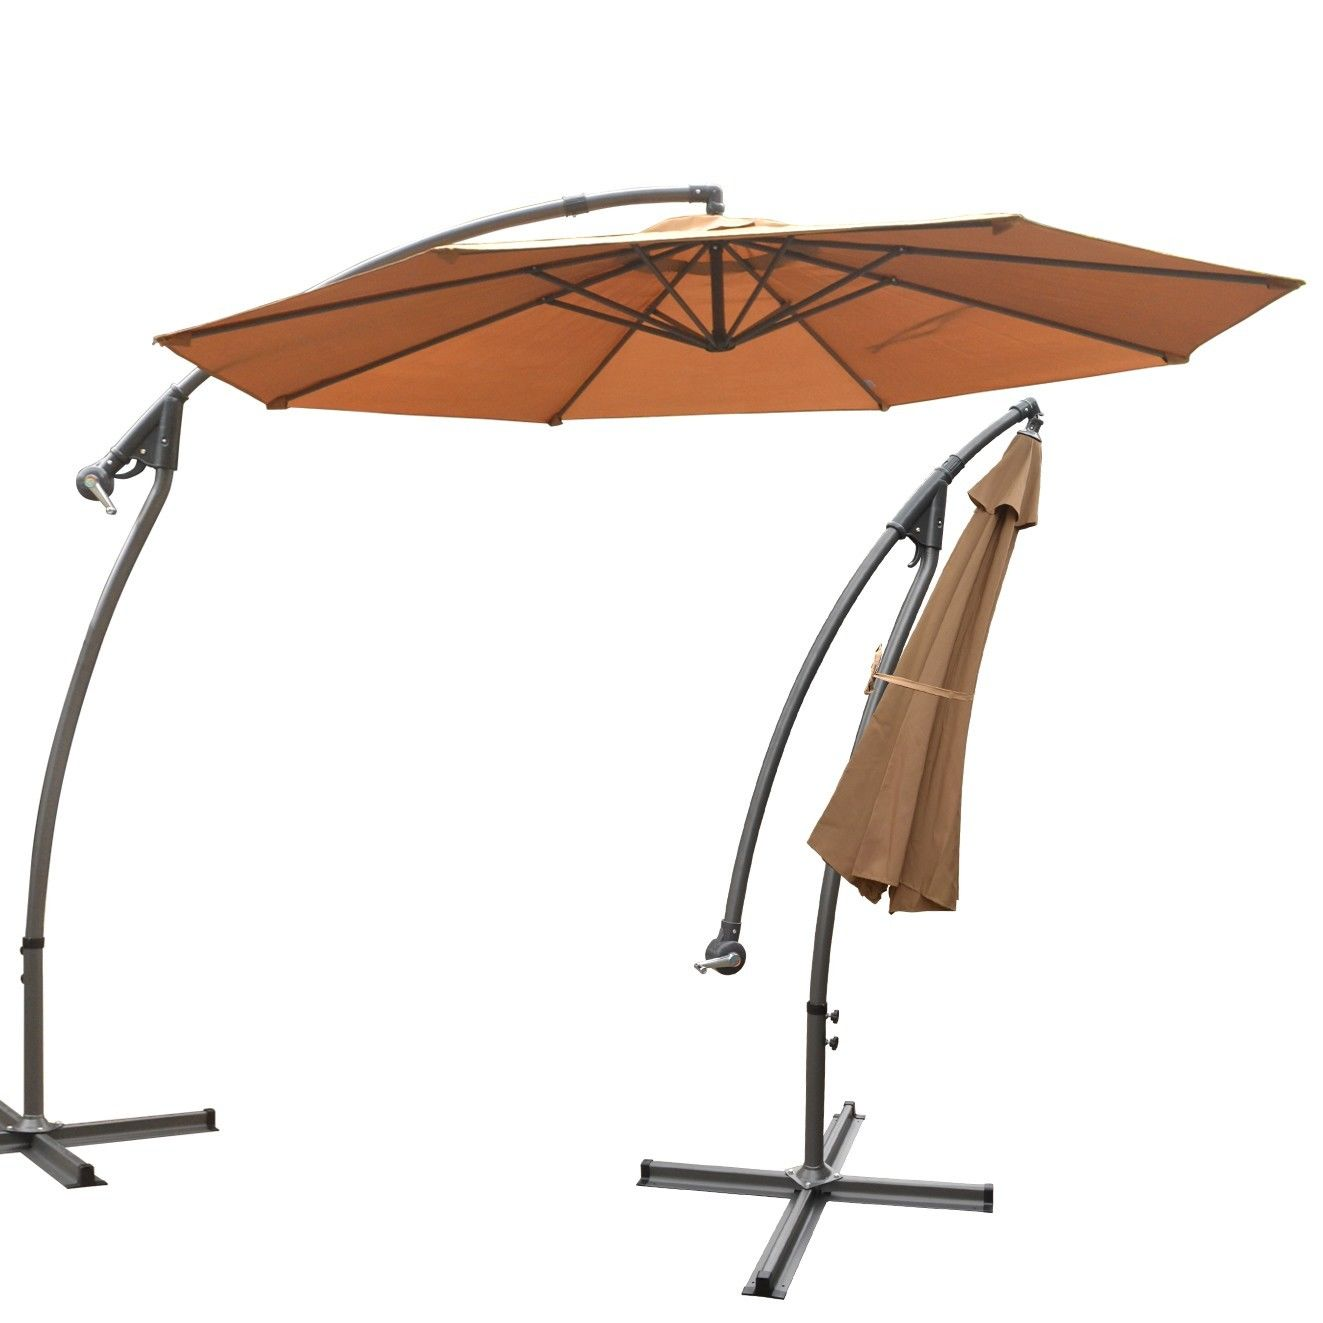 tan cantilever patio umbrella with black stand for patio furniture ideas